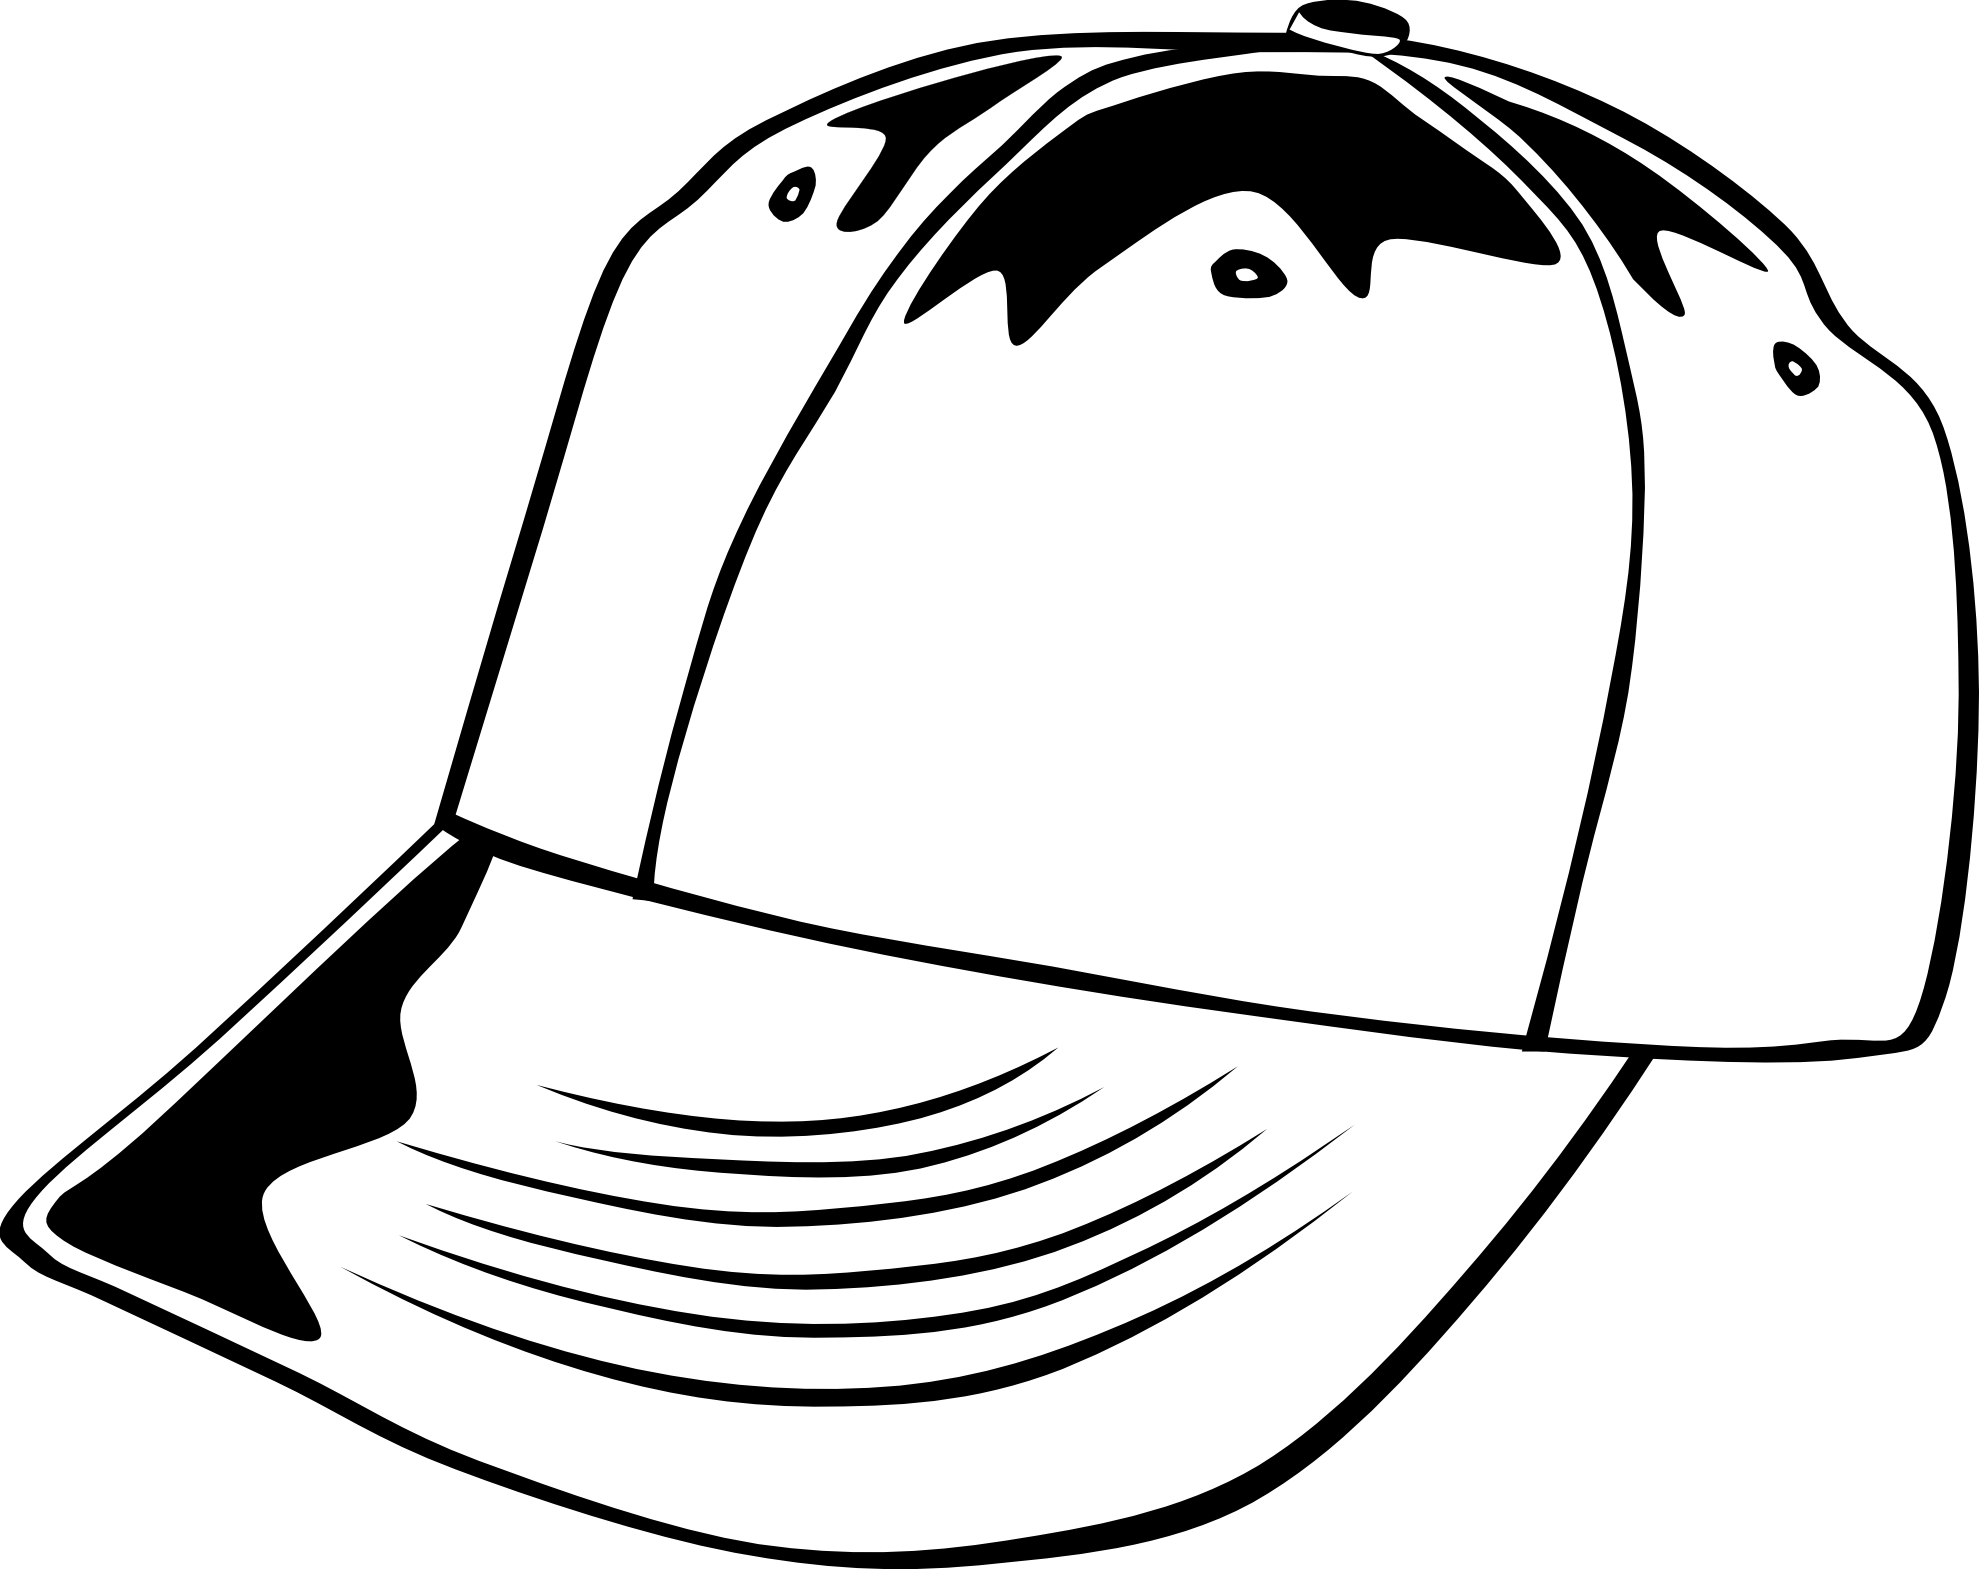 White baseball hat clipart clip art royalty free library Cap PNG Black And White Transparent Cap Black And White.PNG Images ... clip art royalty free library